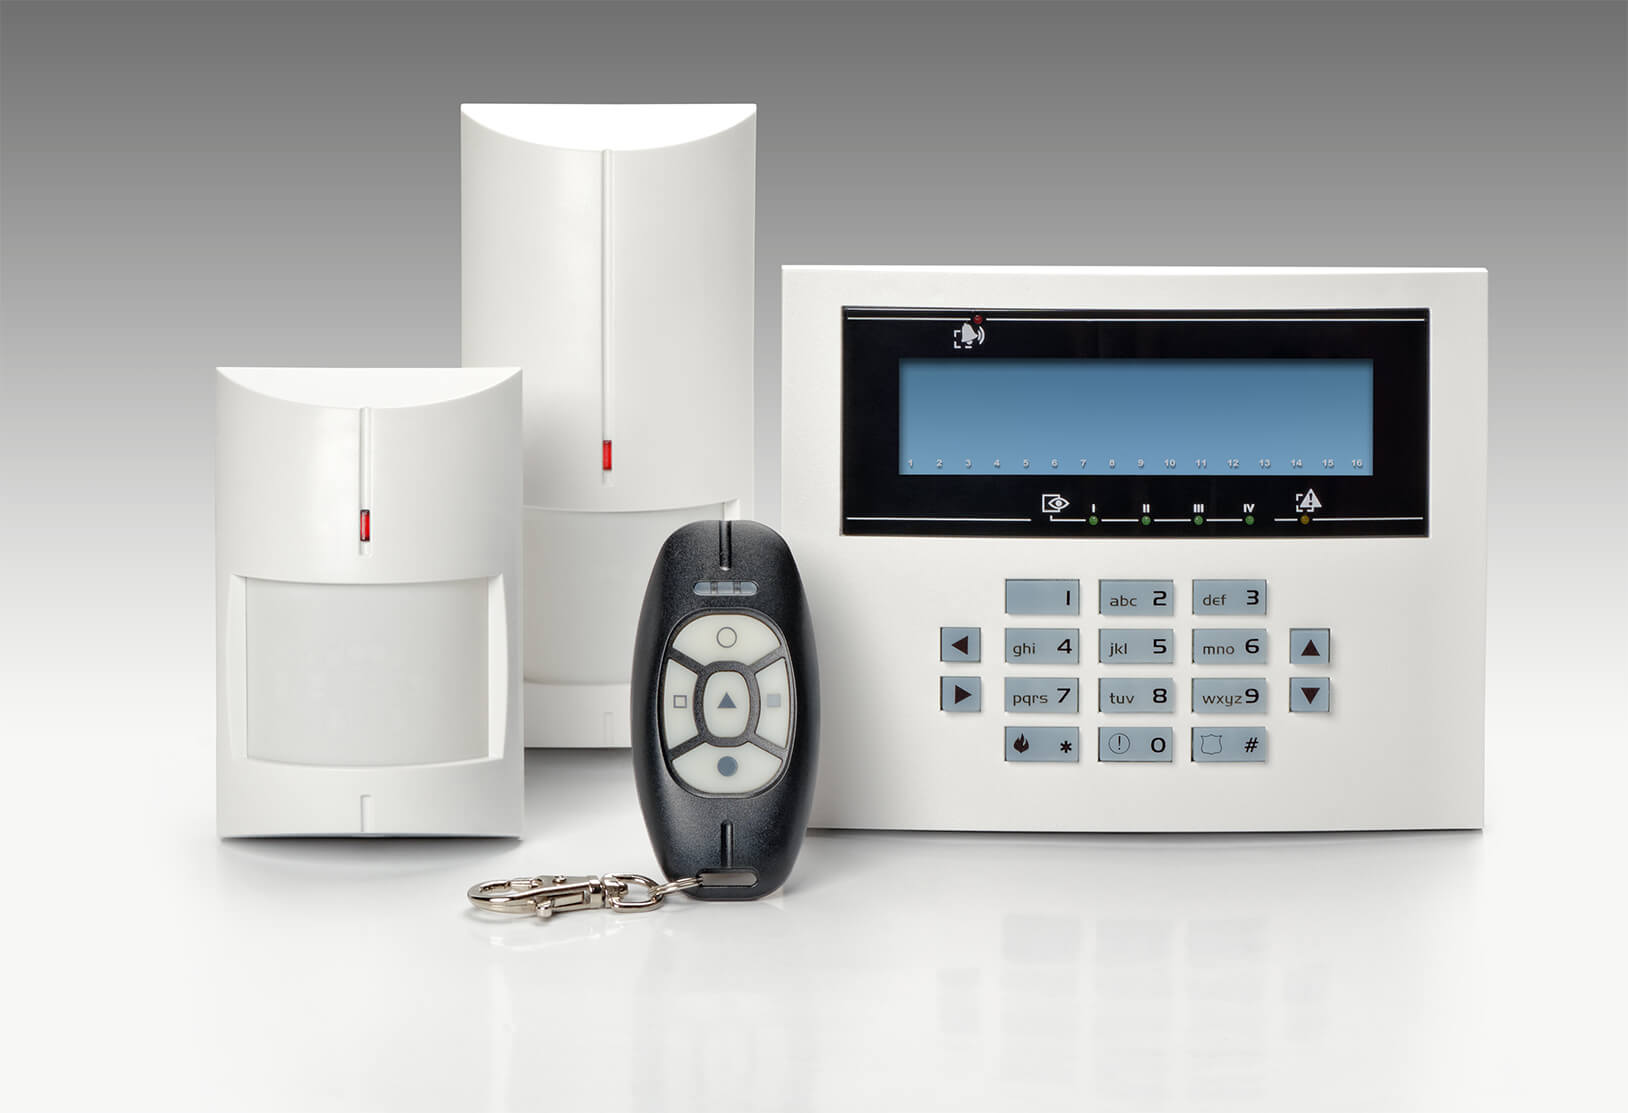 Business & Residential NSI / NACOSS Approved Burglar Alarms In South Tottenham N15 - Local South Tottenham N15 security company.Call 02078872244 - Dedicated to Safety & Security. Companies, shops and homes ..